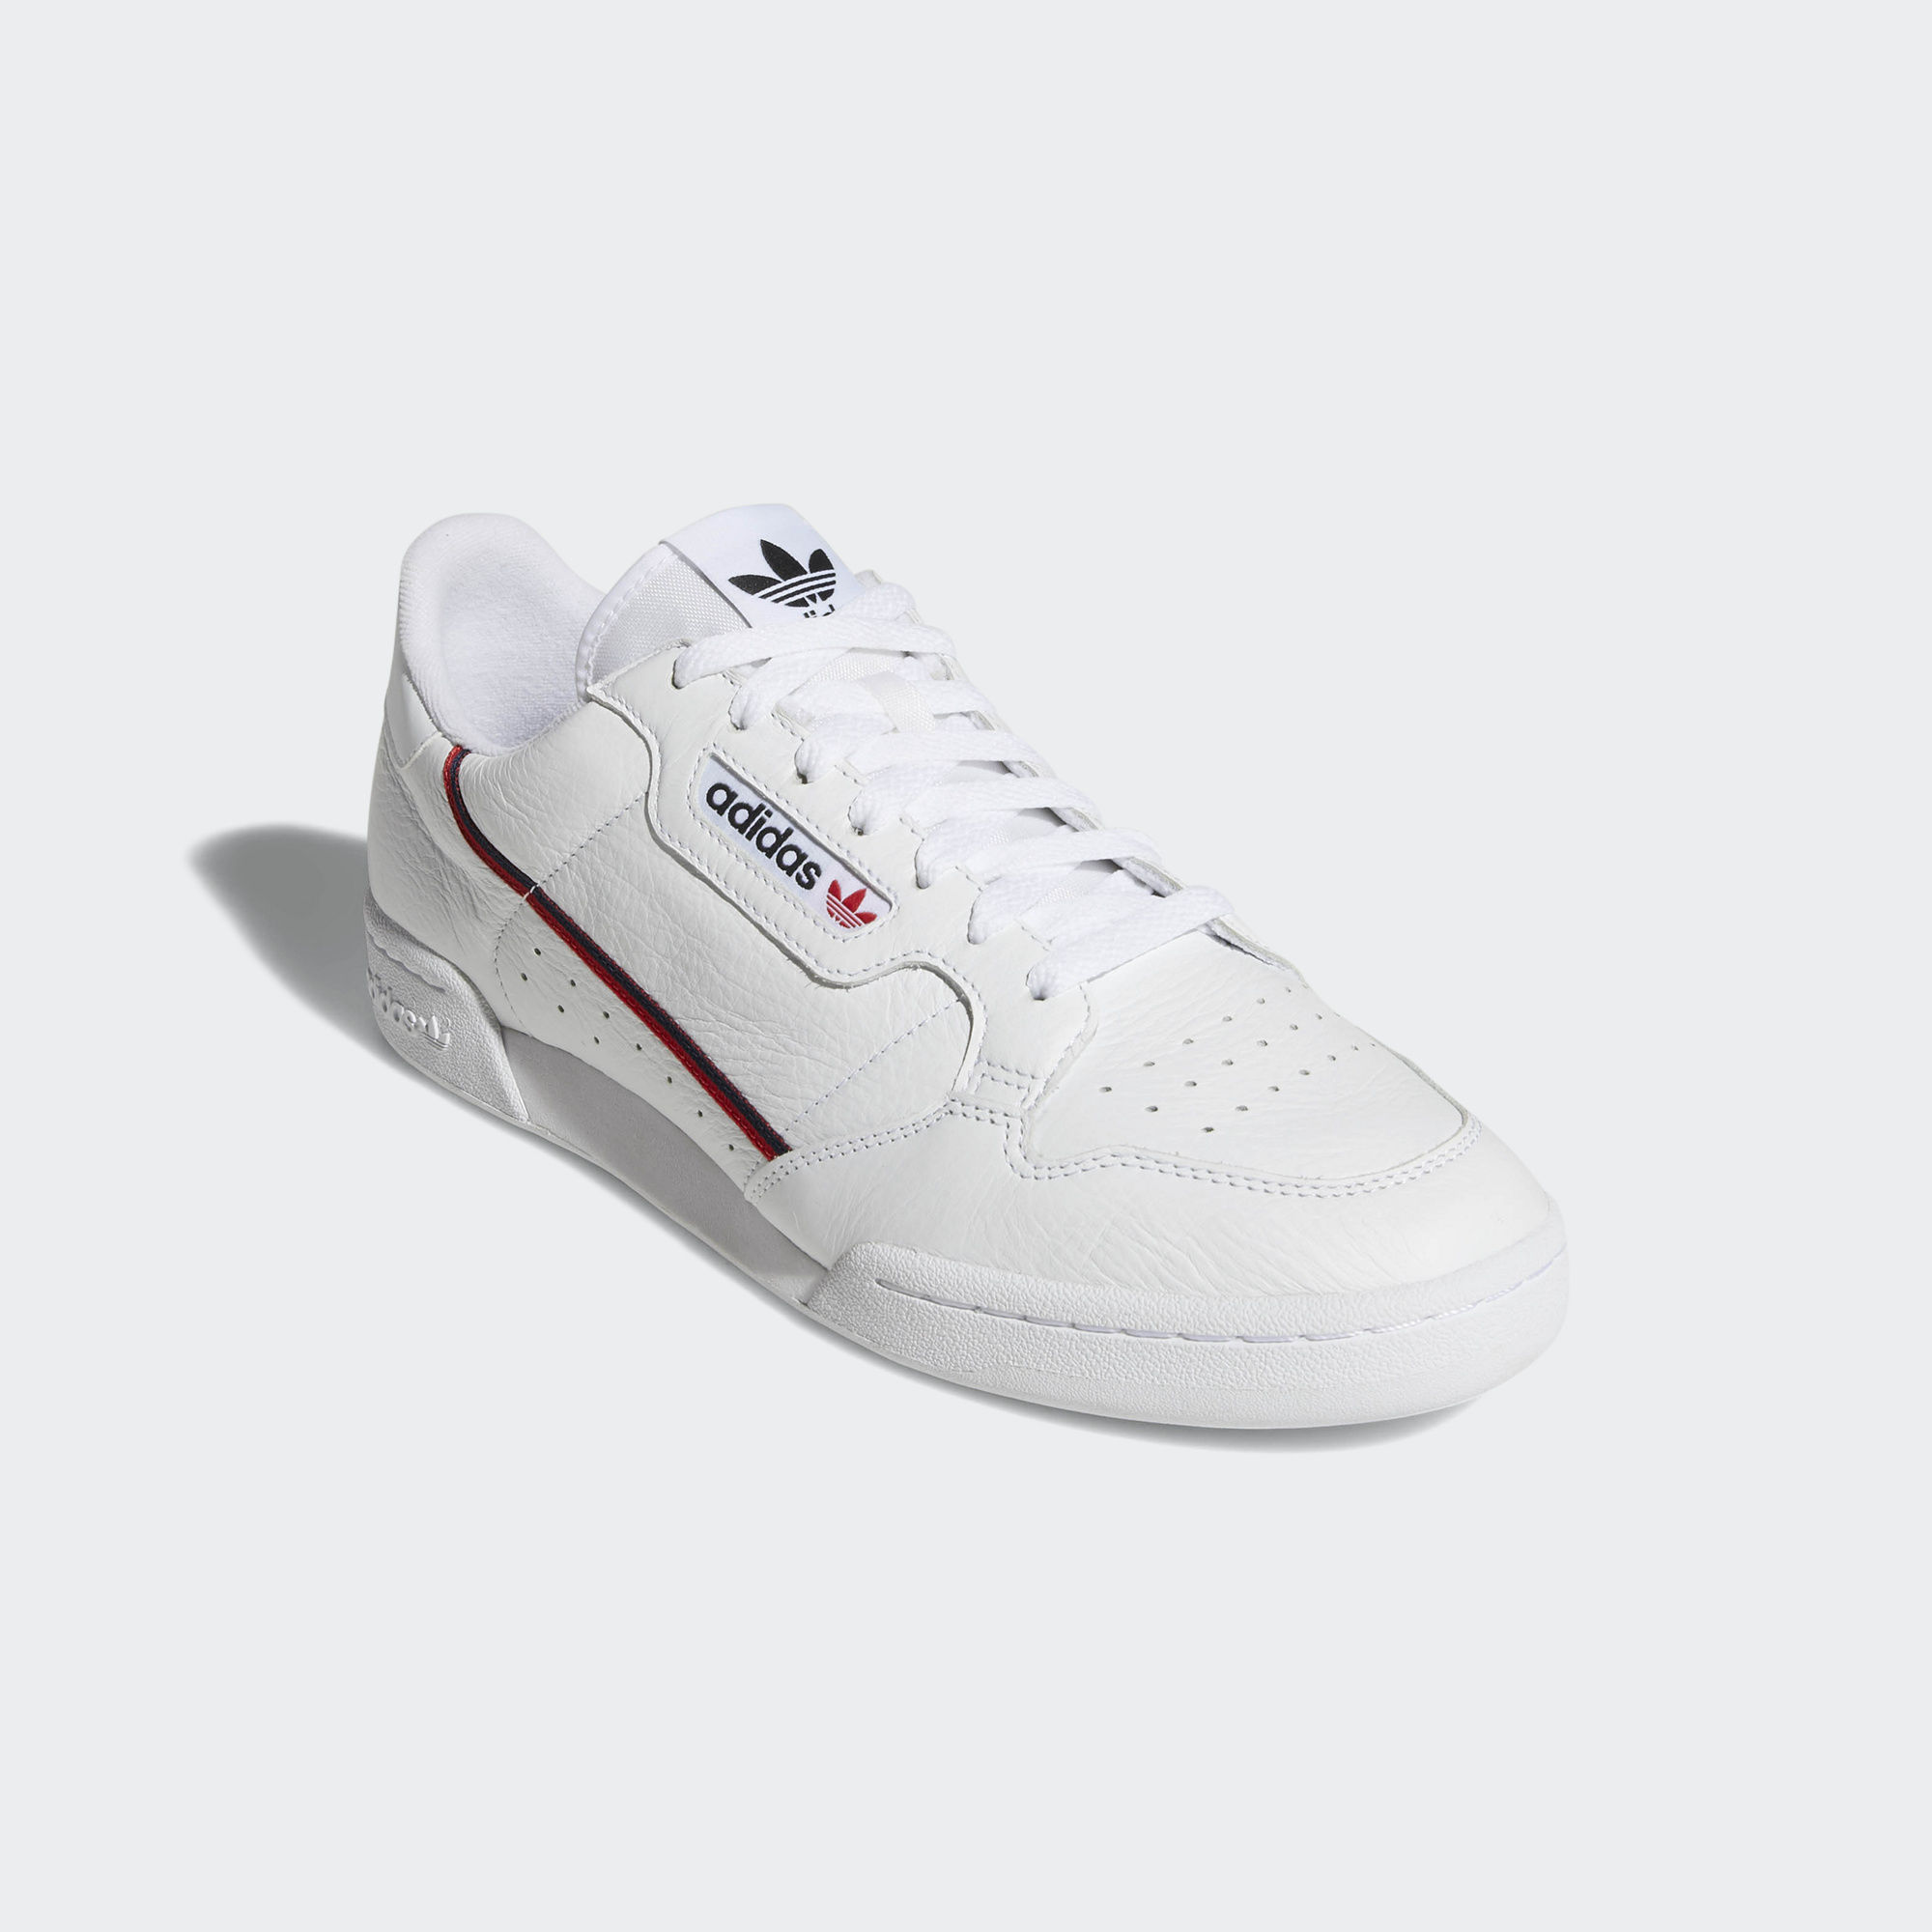 Adidas Rascal Continental 80 Ftwr White / Scarlet / Collegiate Navy (B41674)